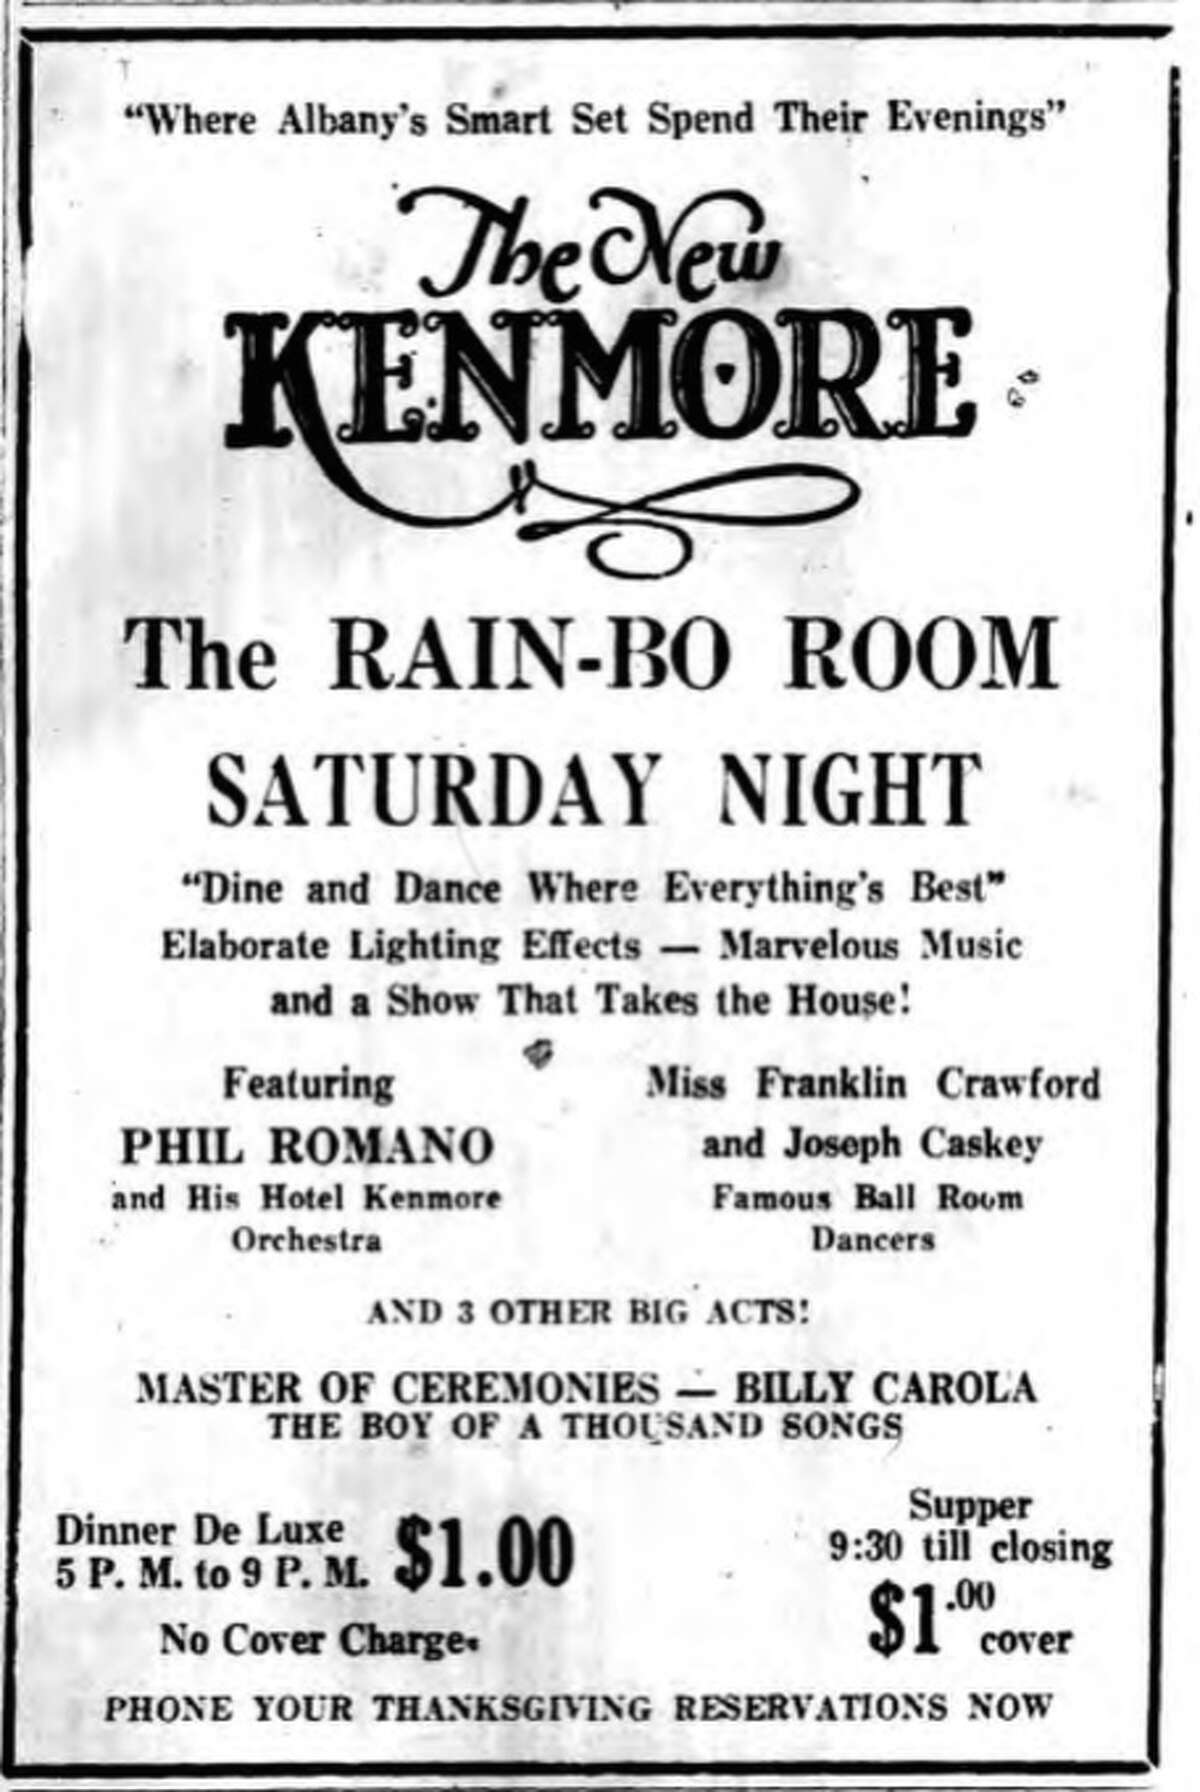 Kenmore ad